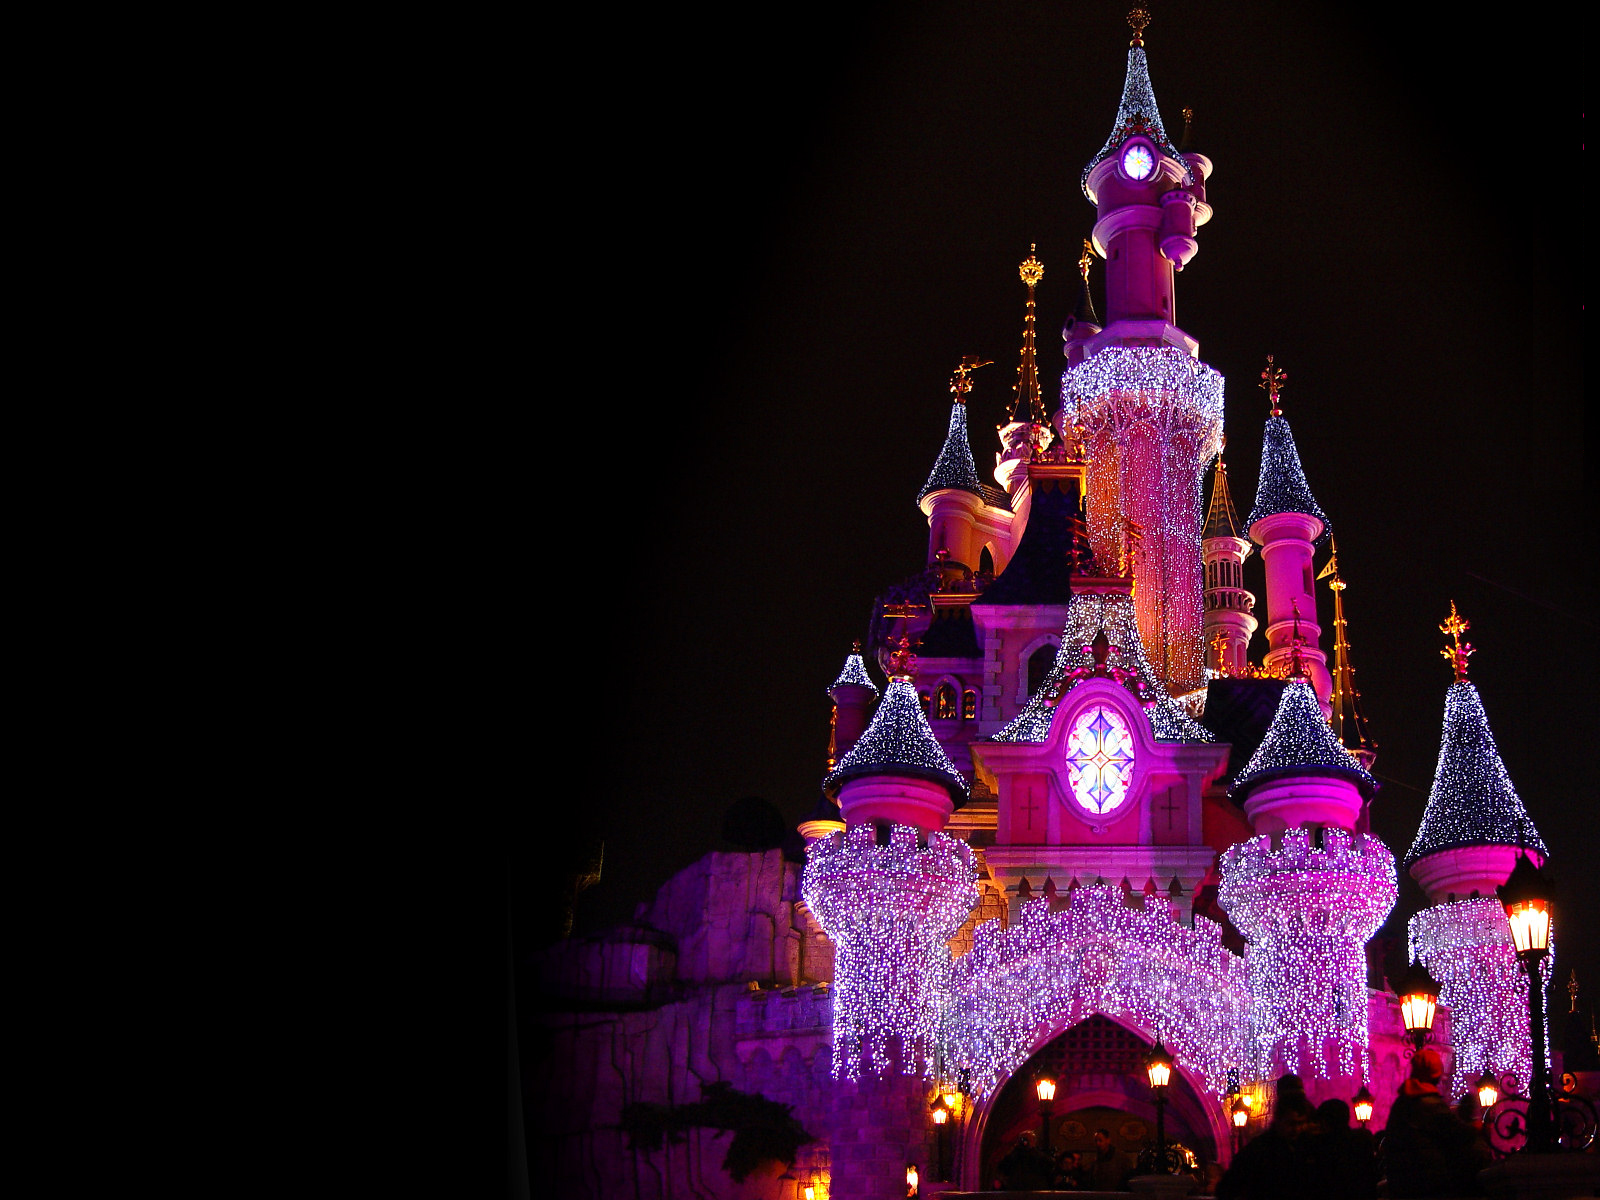 disney desktop hd wallpaper amazing wallpapers